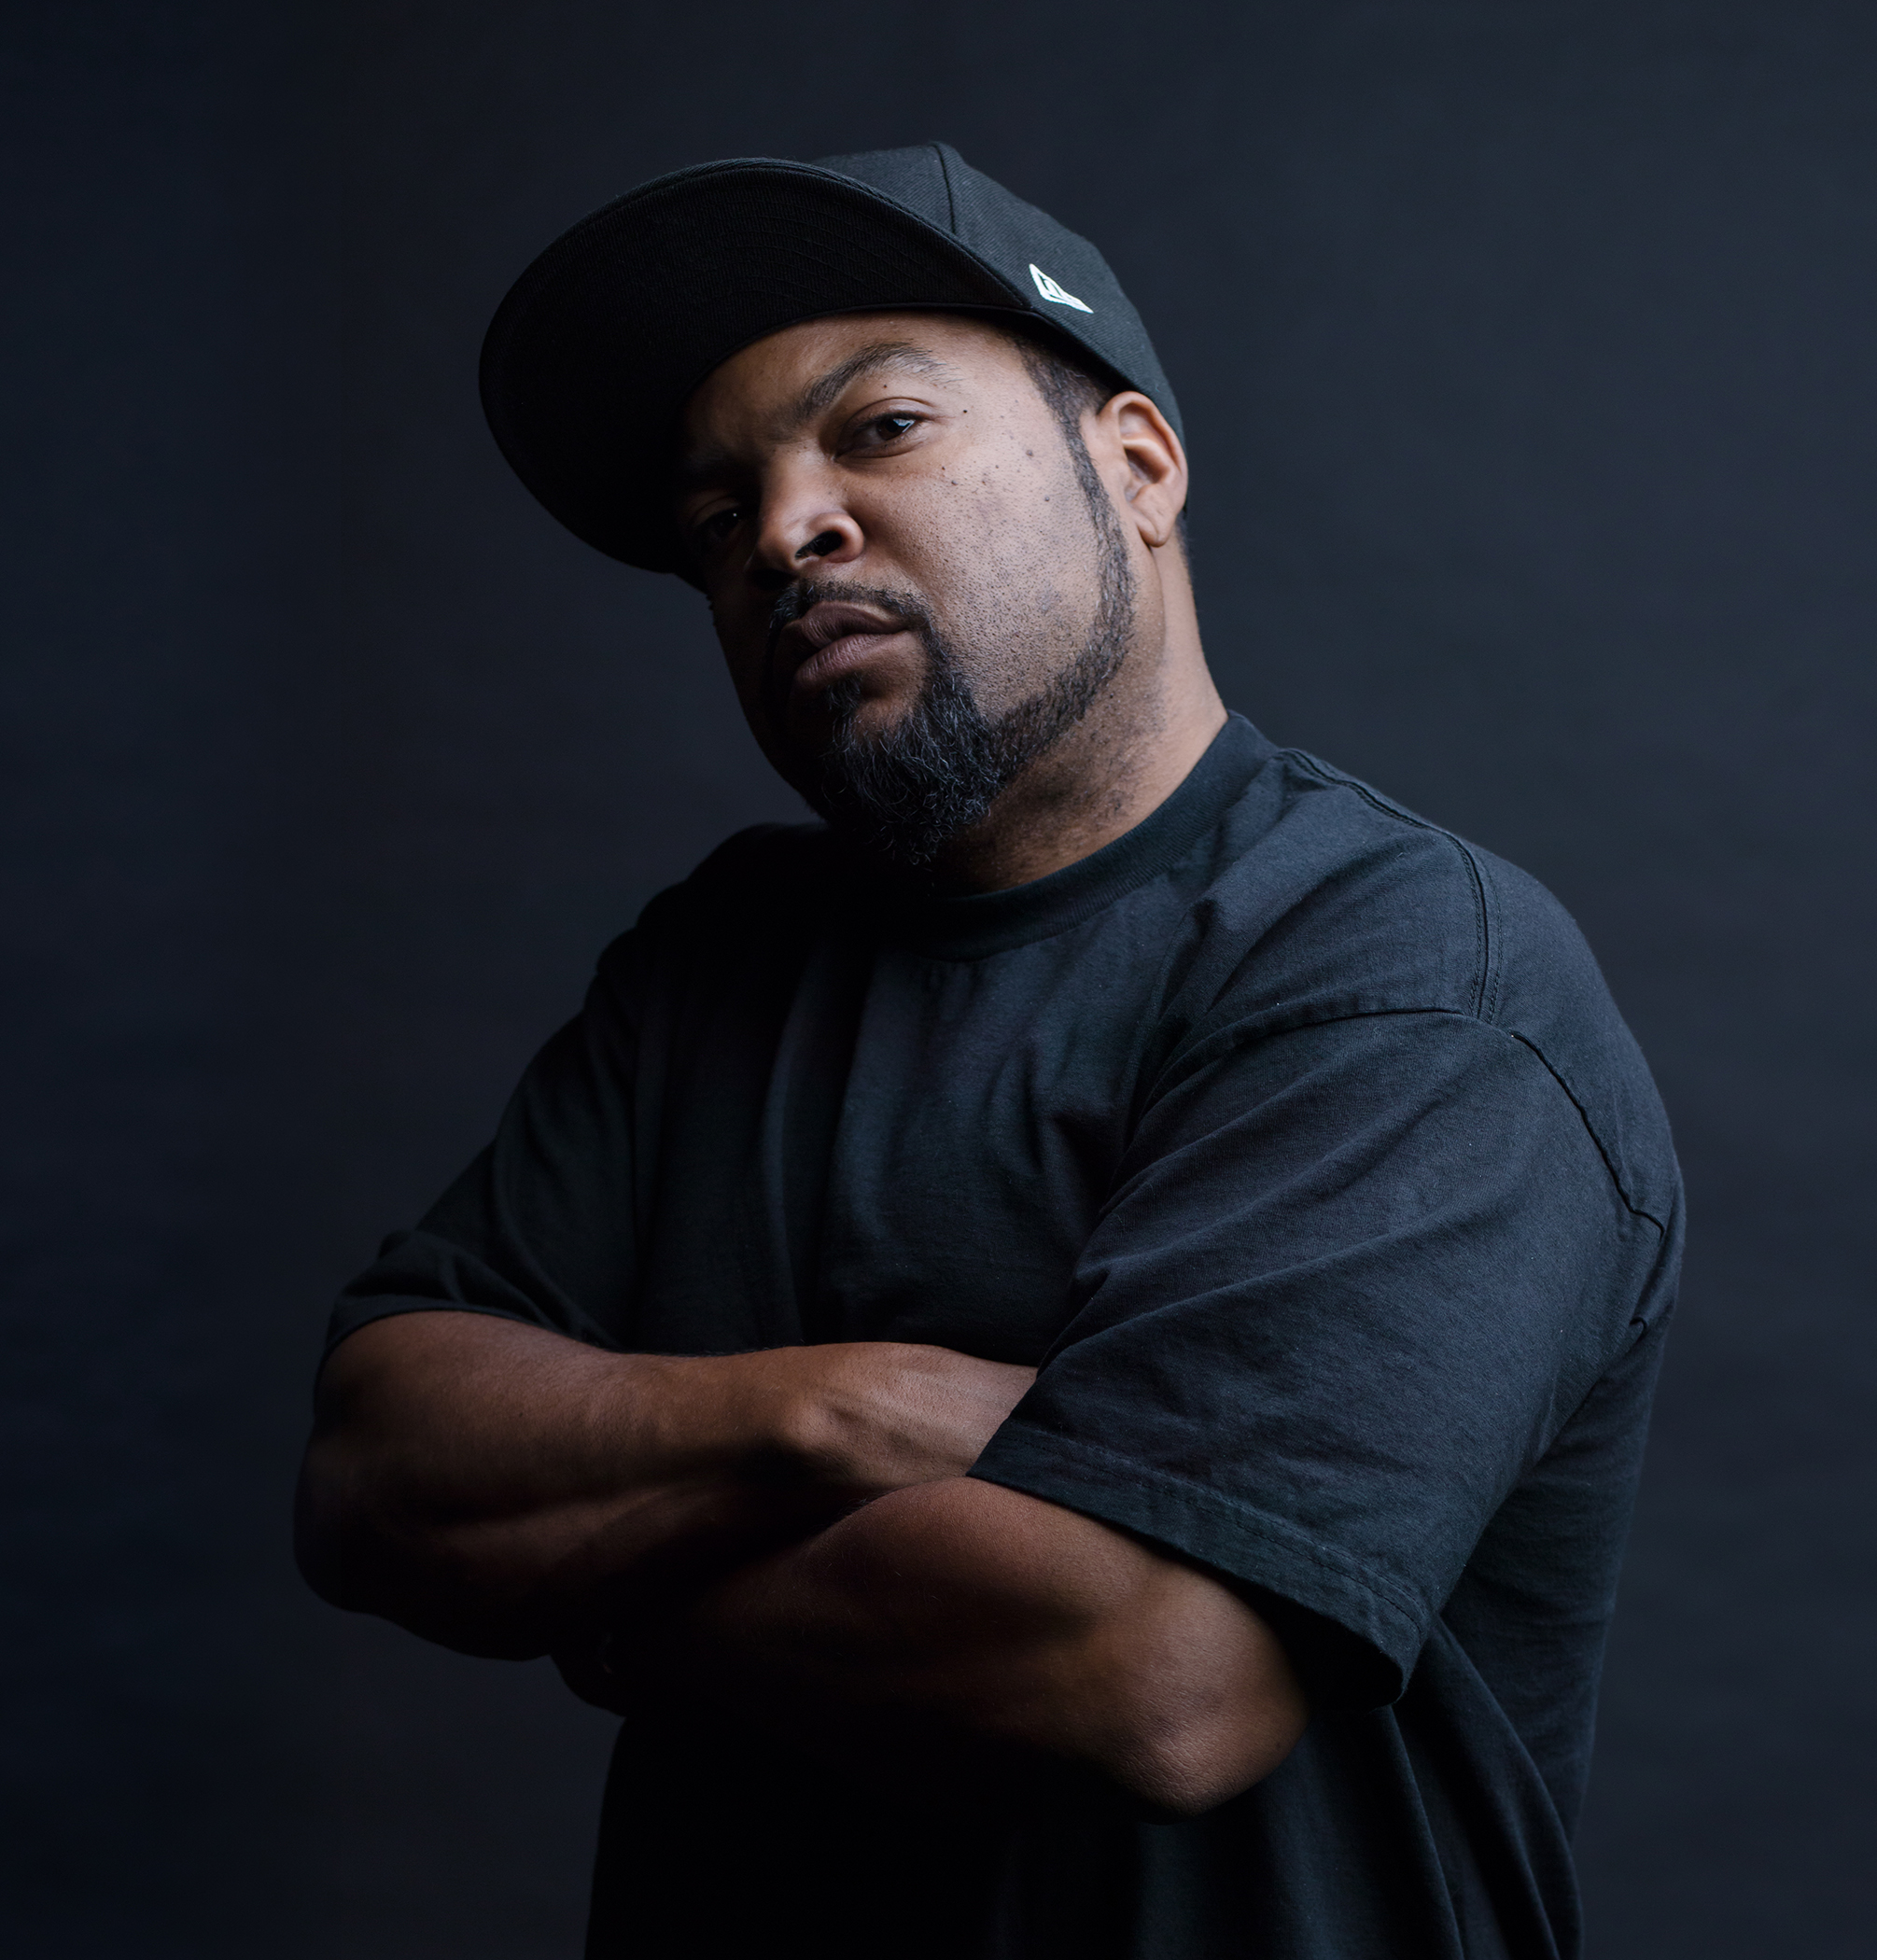 HQ Ice Cube Wallpapers | File 1866.04Kb